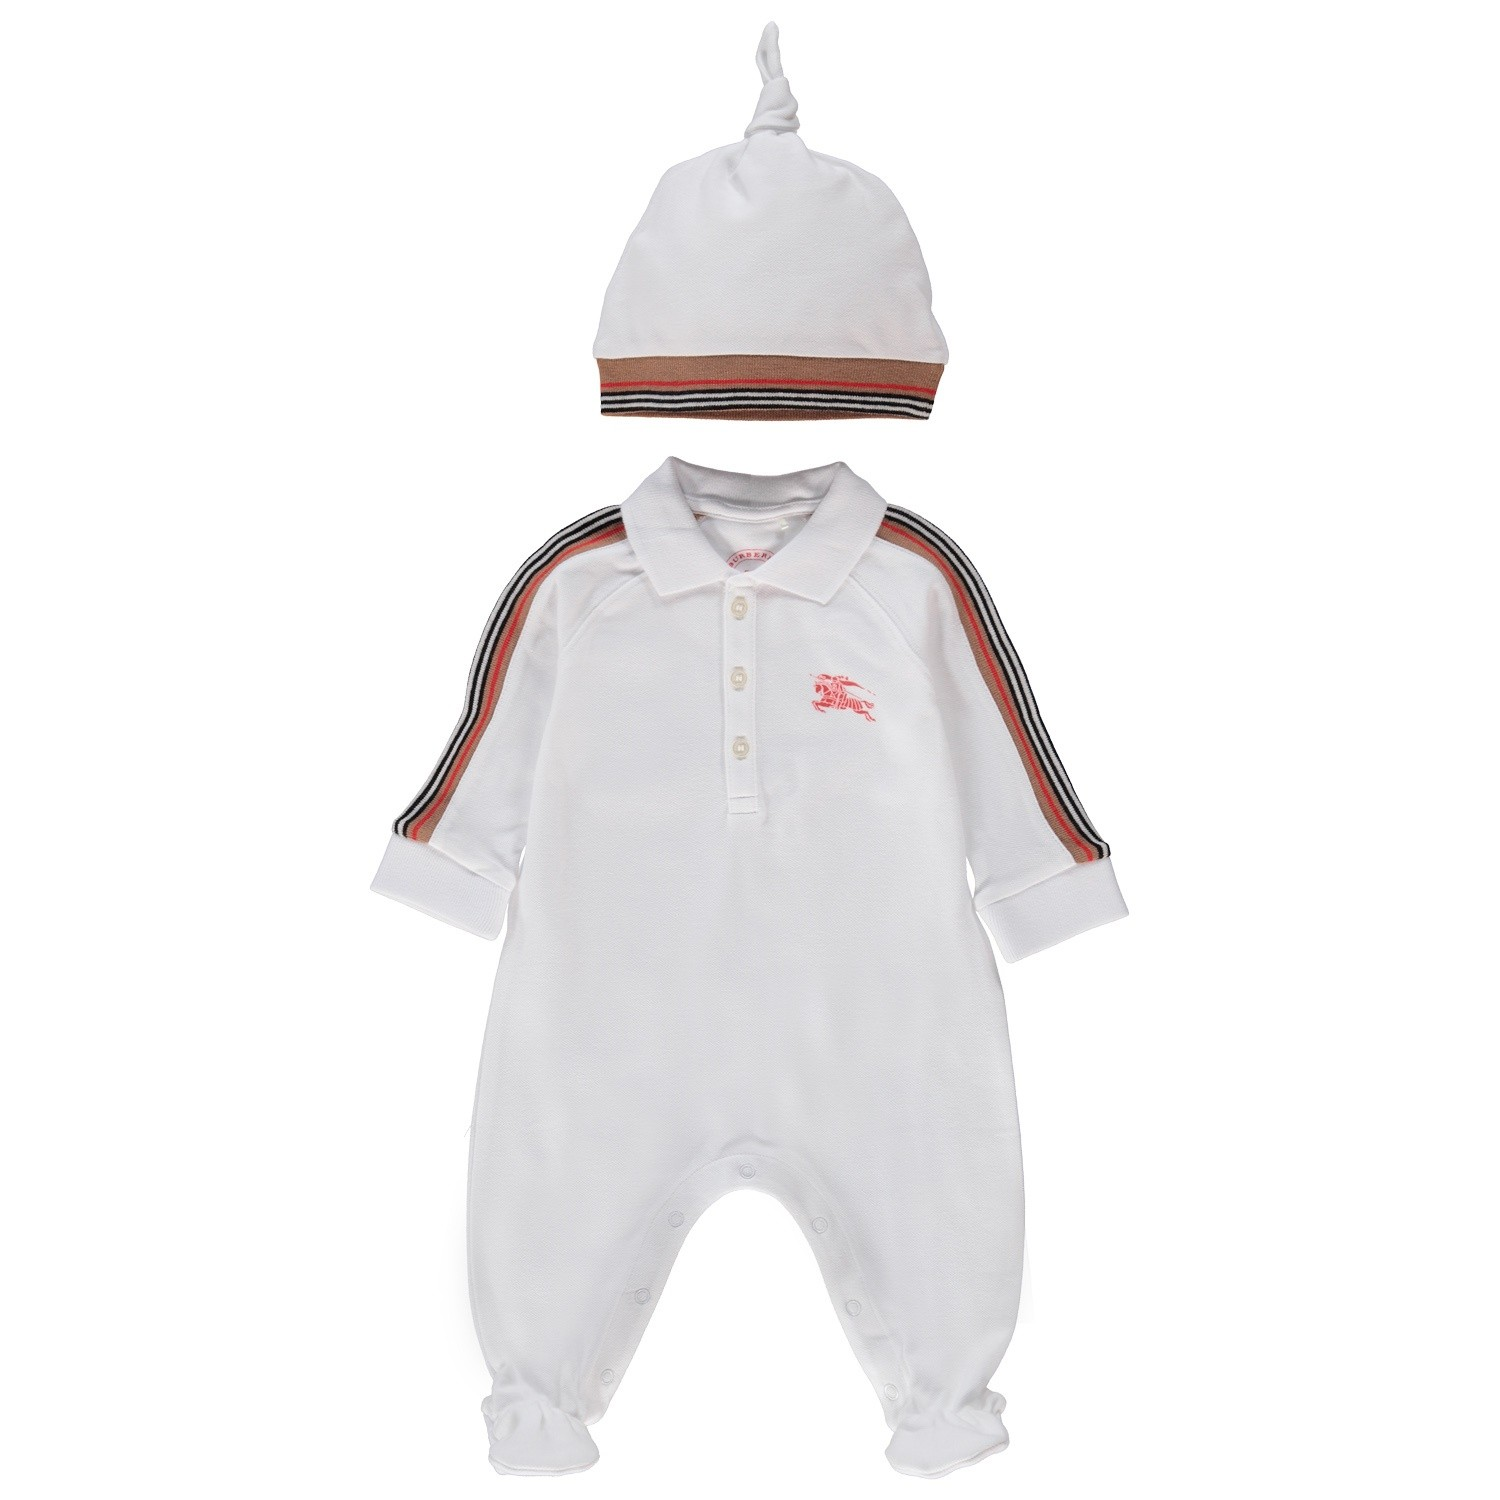 Picture of Burberry 8002951 baby playsuit white